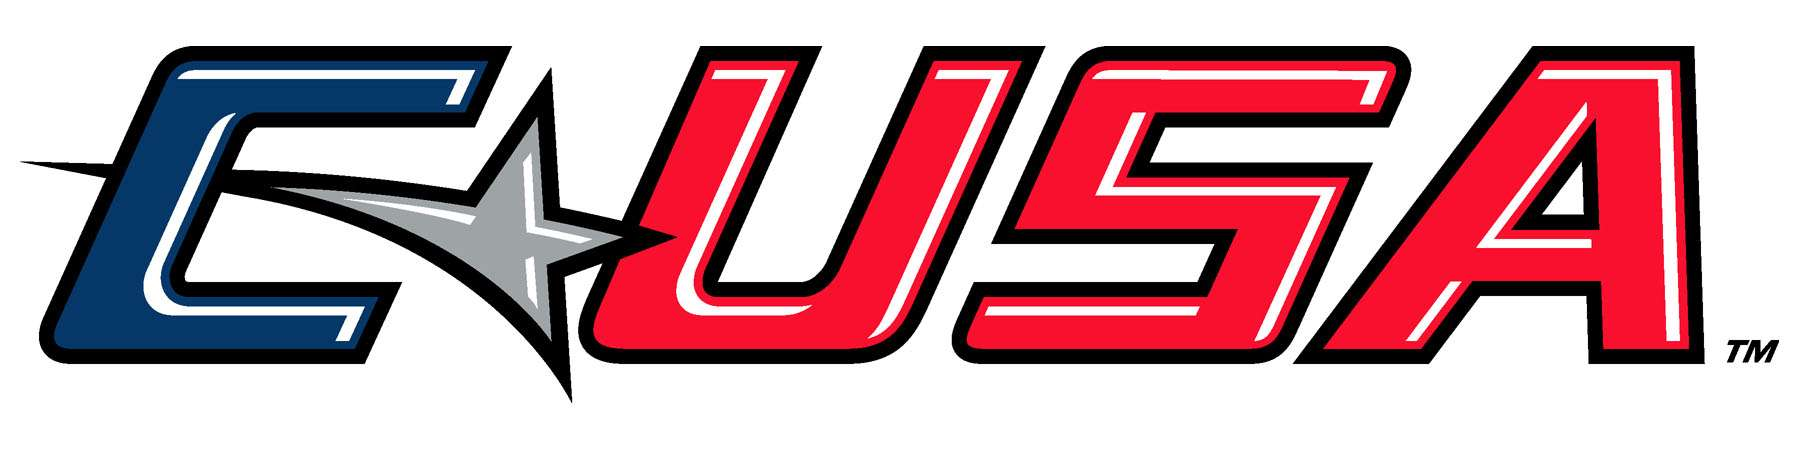 Cusa Logo Get Good Head